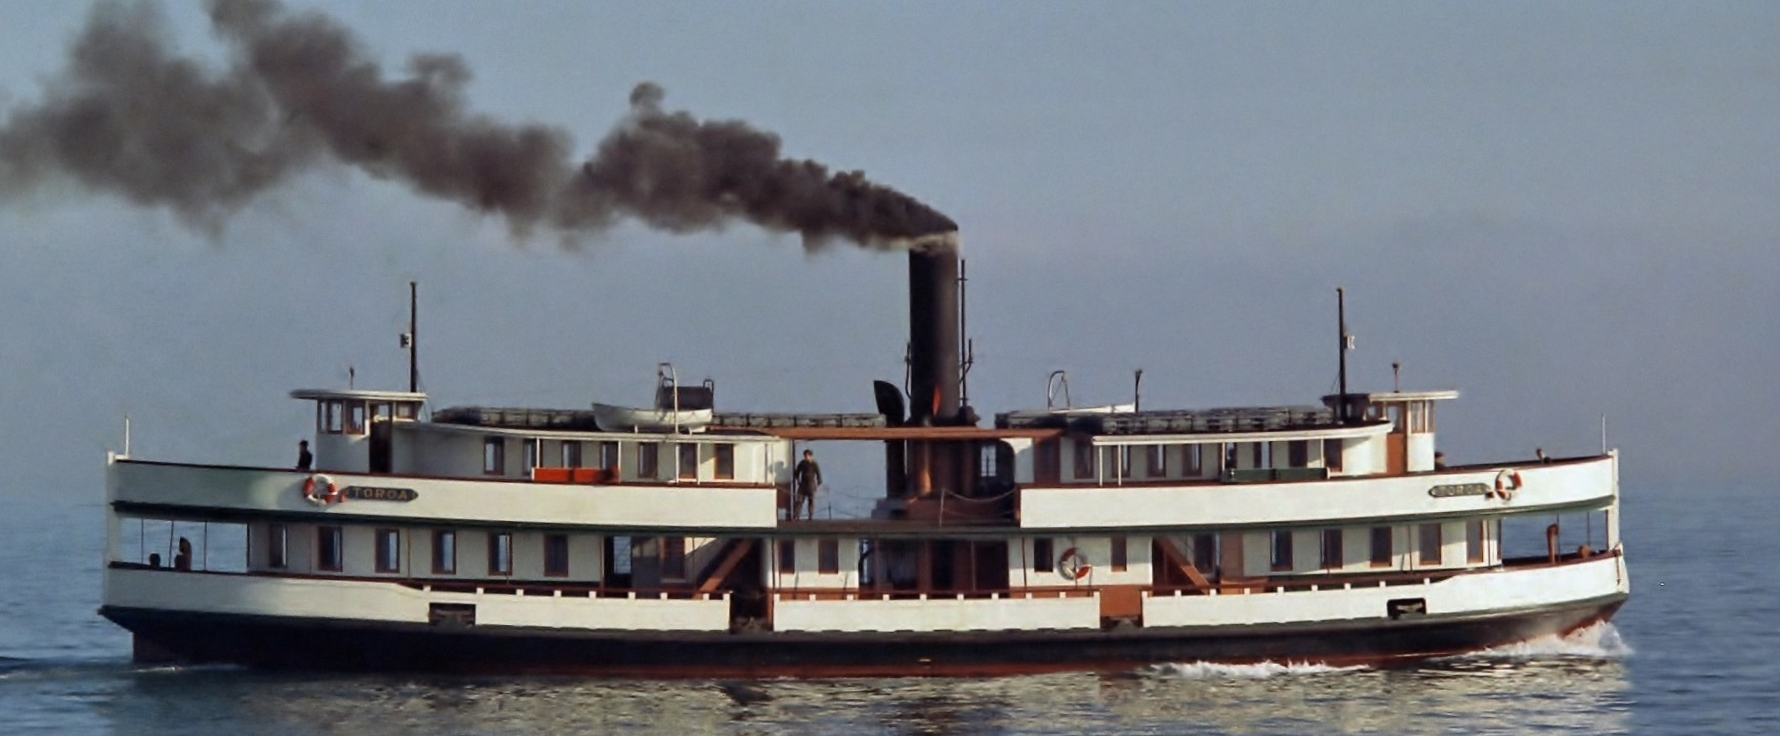 STEAM FERRY TOROA